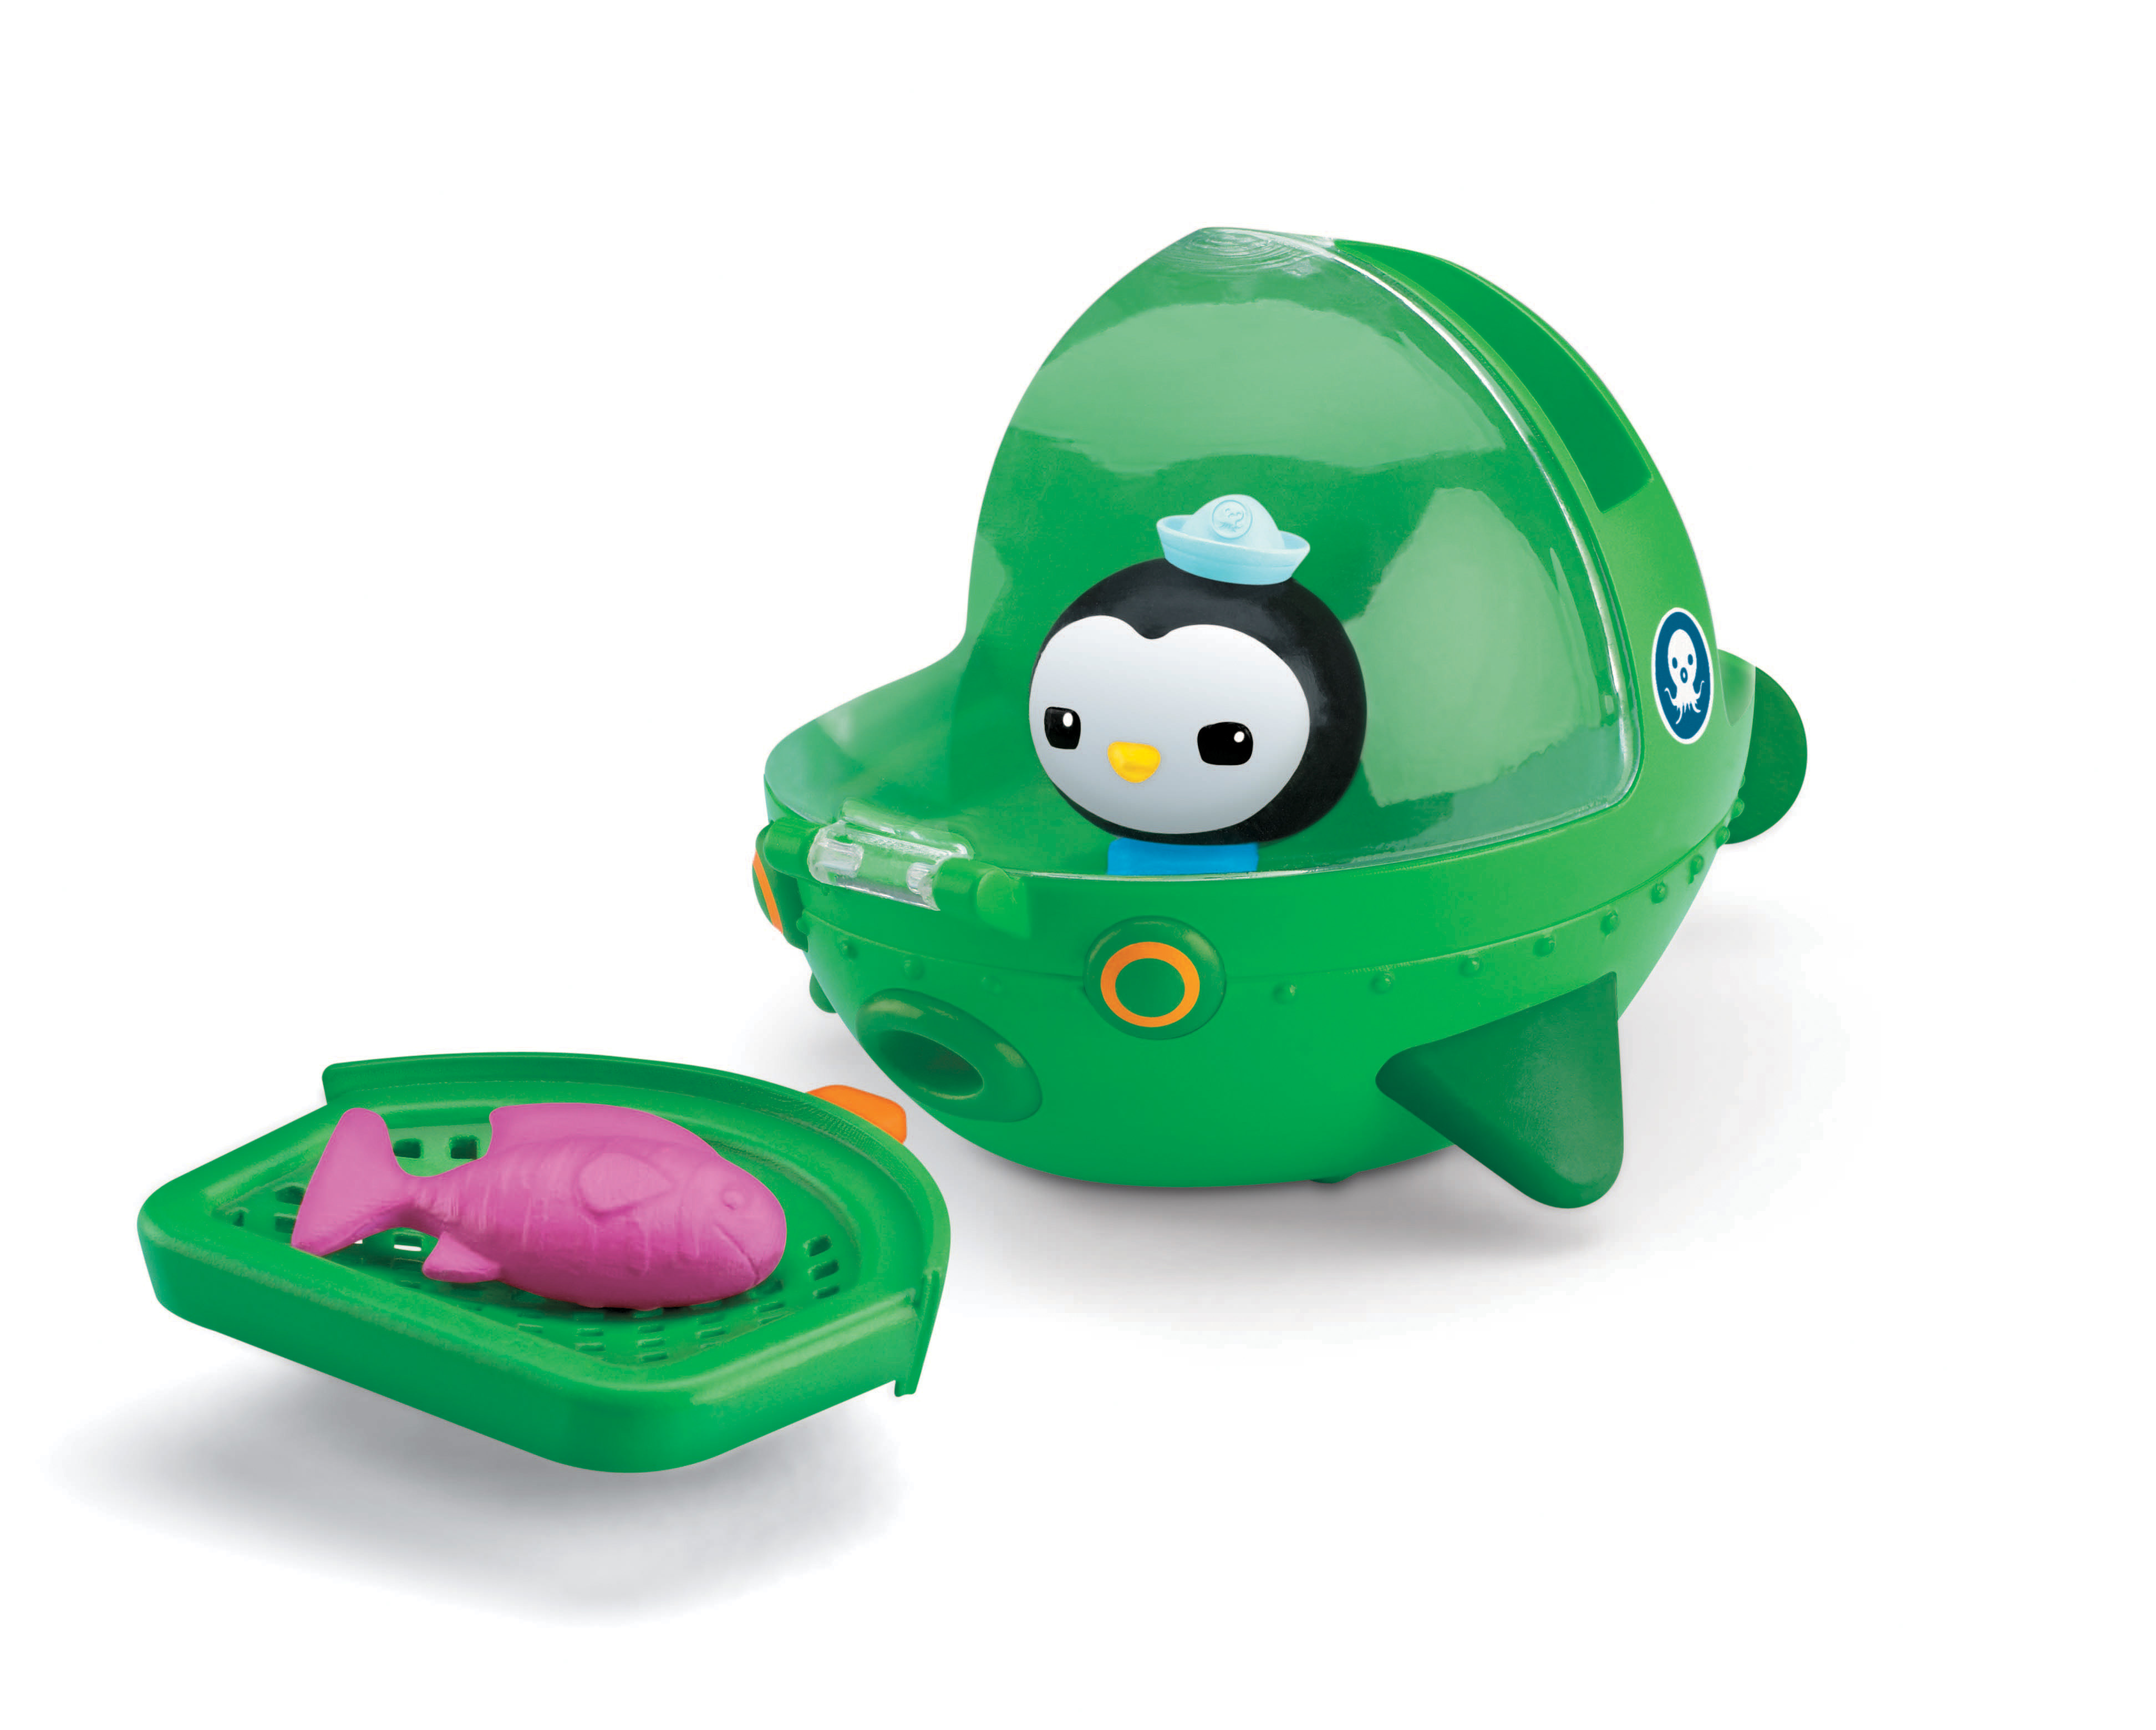 Fisher-Price Octonauts Gup-E and - 1162.0KB